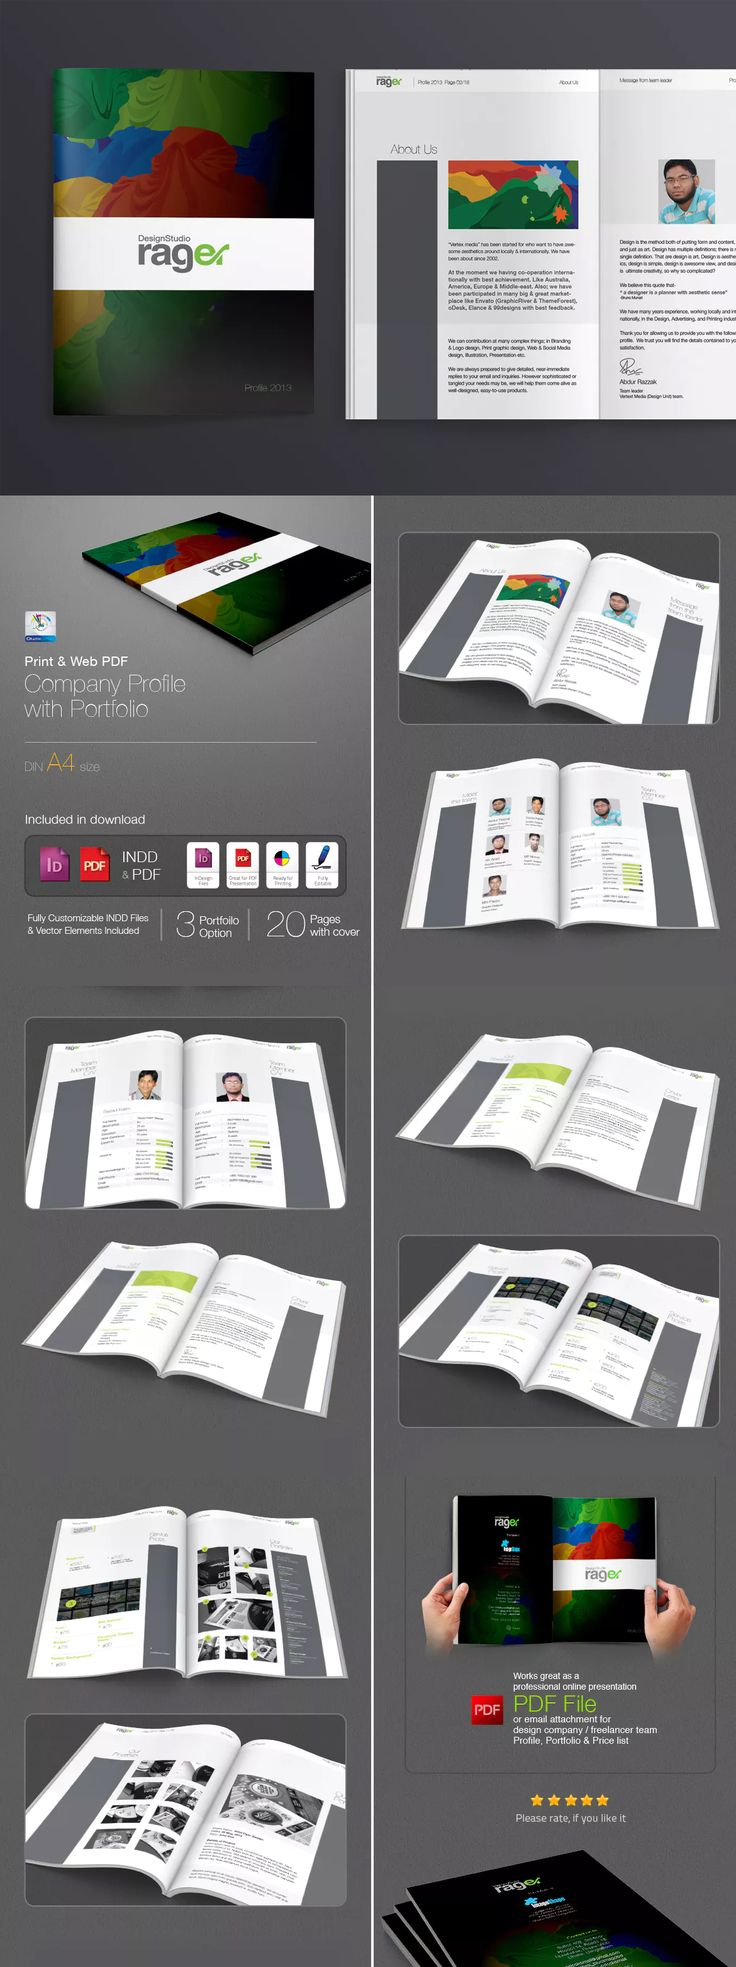 Company Profile with Portfolio Booklet Template InDesign INDD - A4